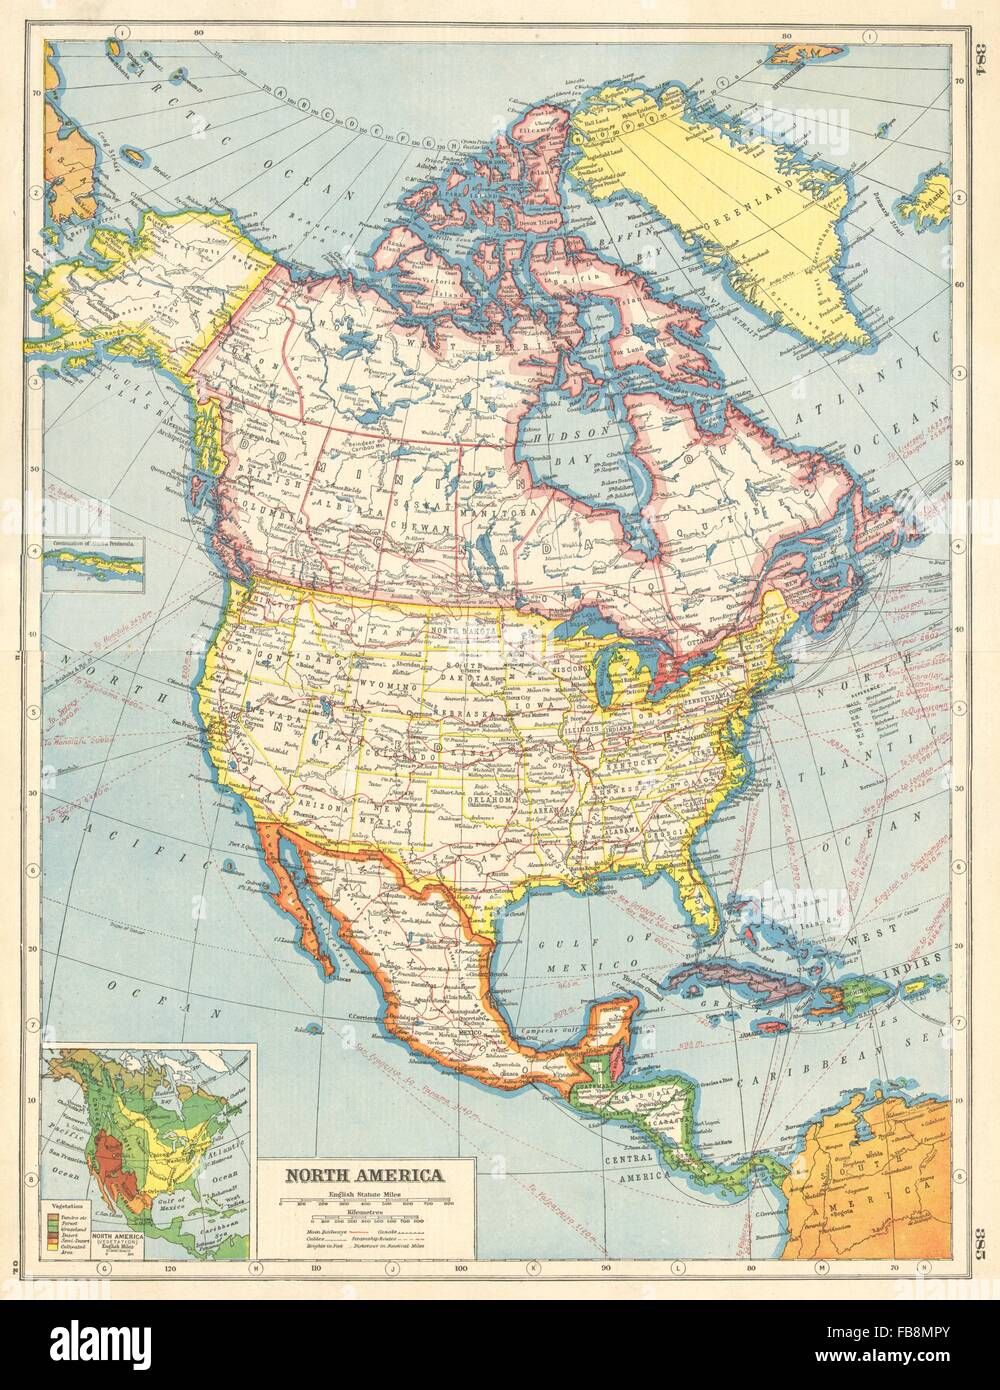 Canada Usa Map States And Provinces.North America Canada Provinces Us States Mexico Inset Vegetation